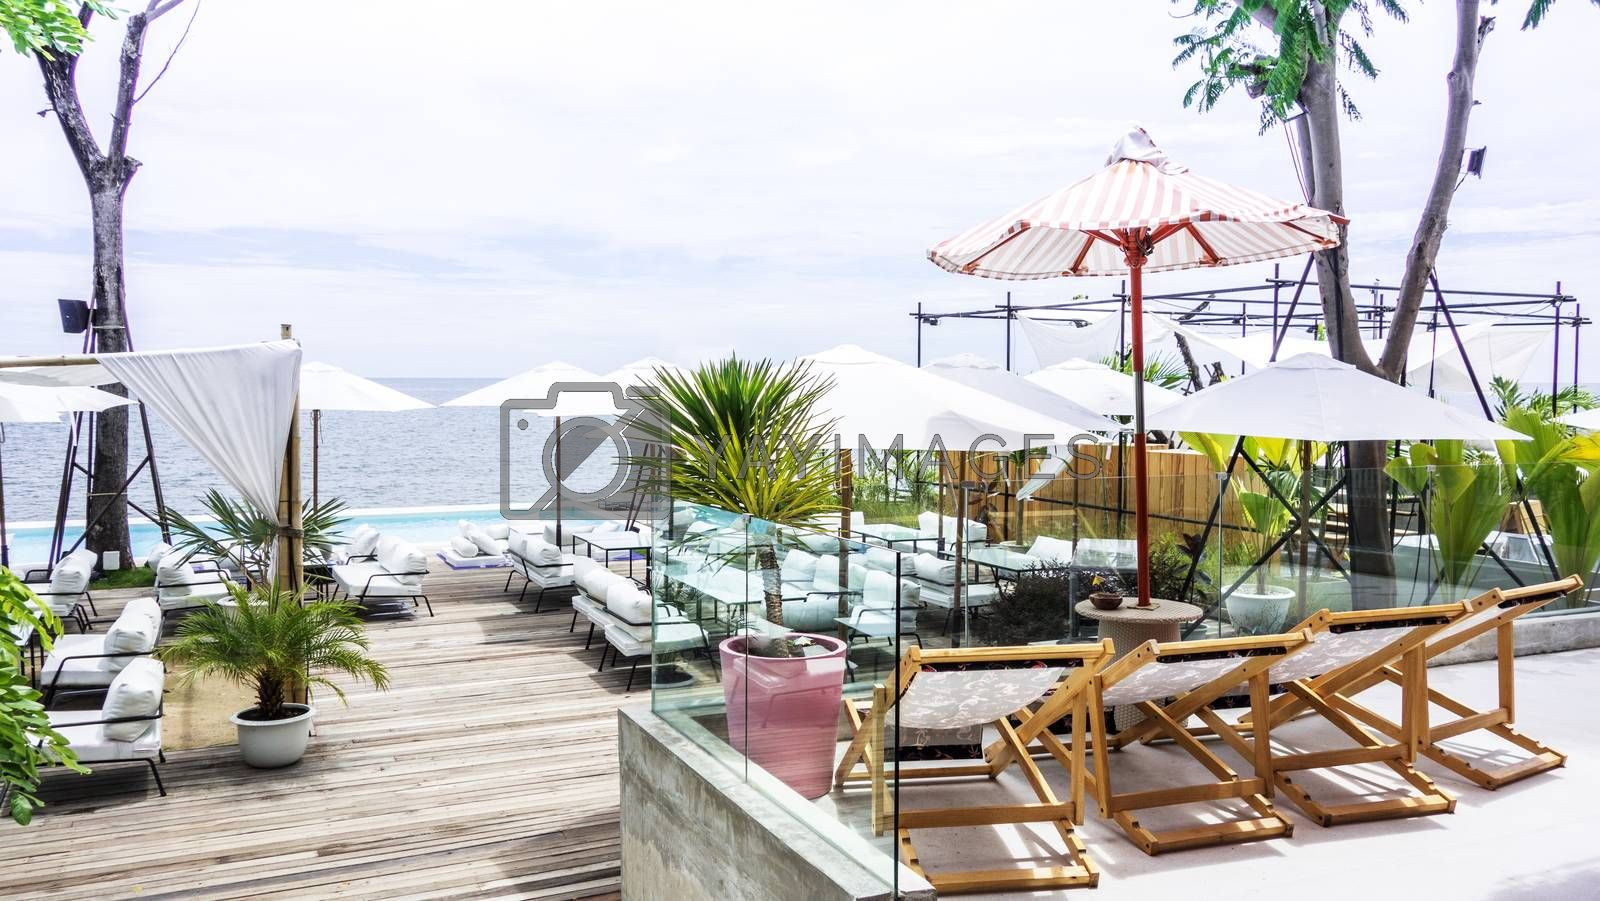 Chaise lounge, umbrella and private swimming pool near luxury vi by Kingsman911